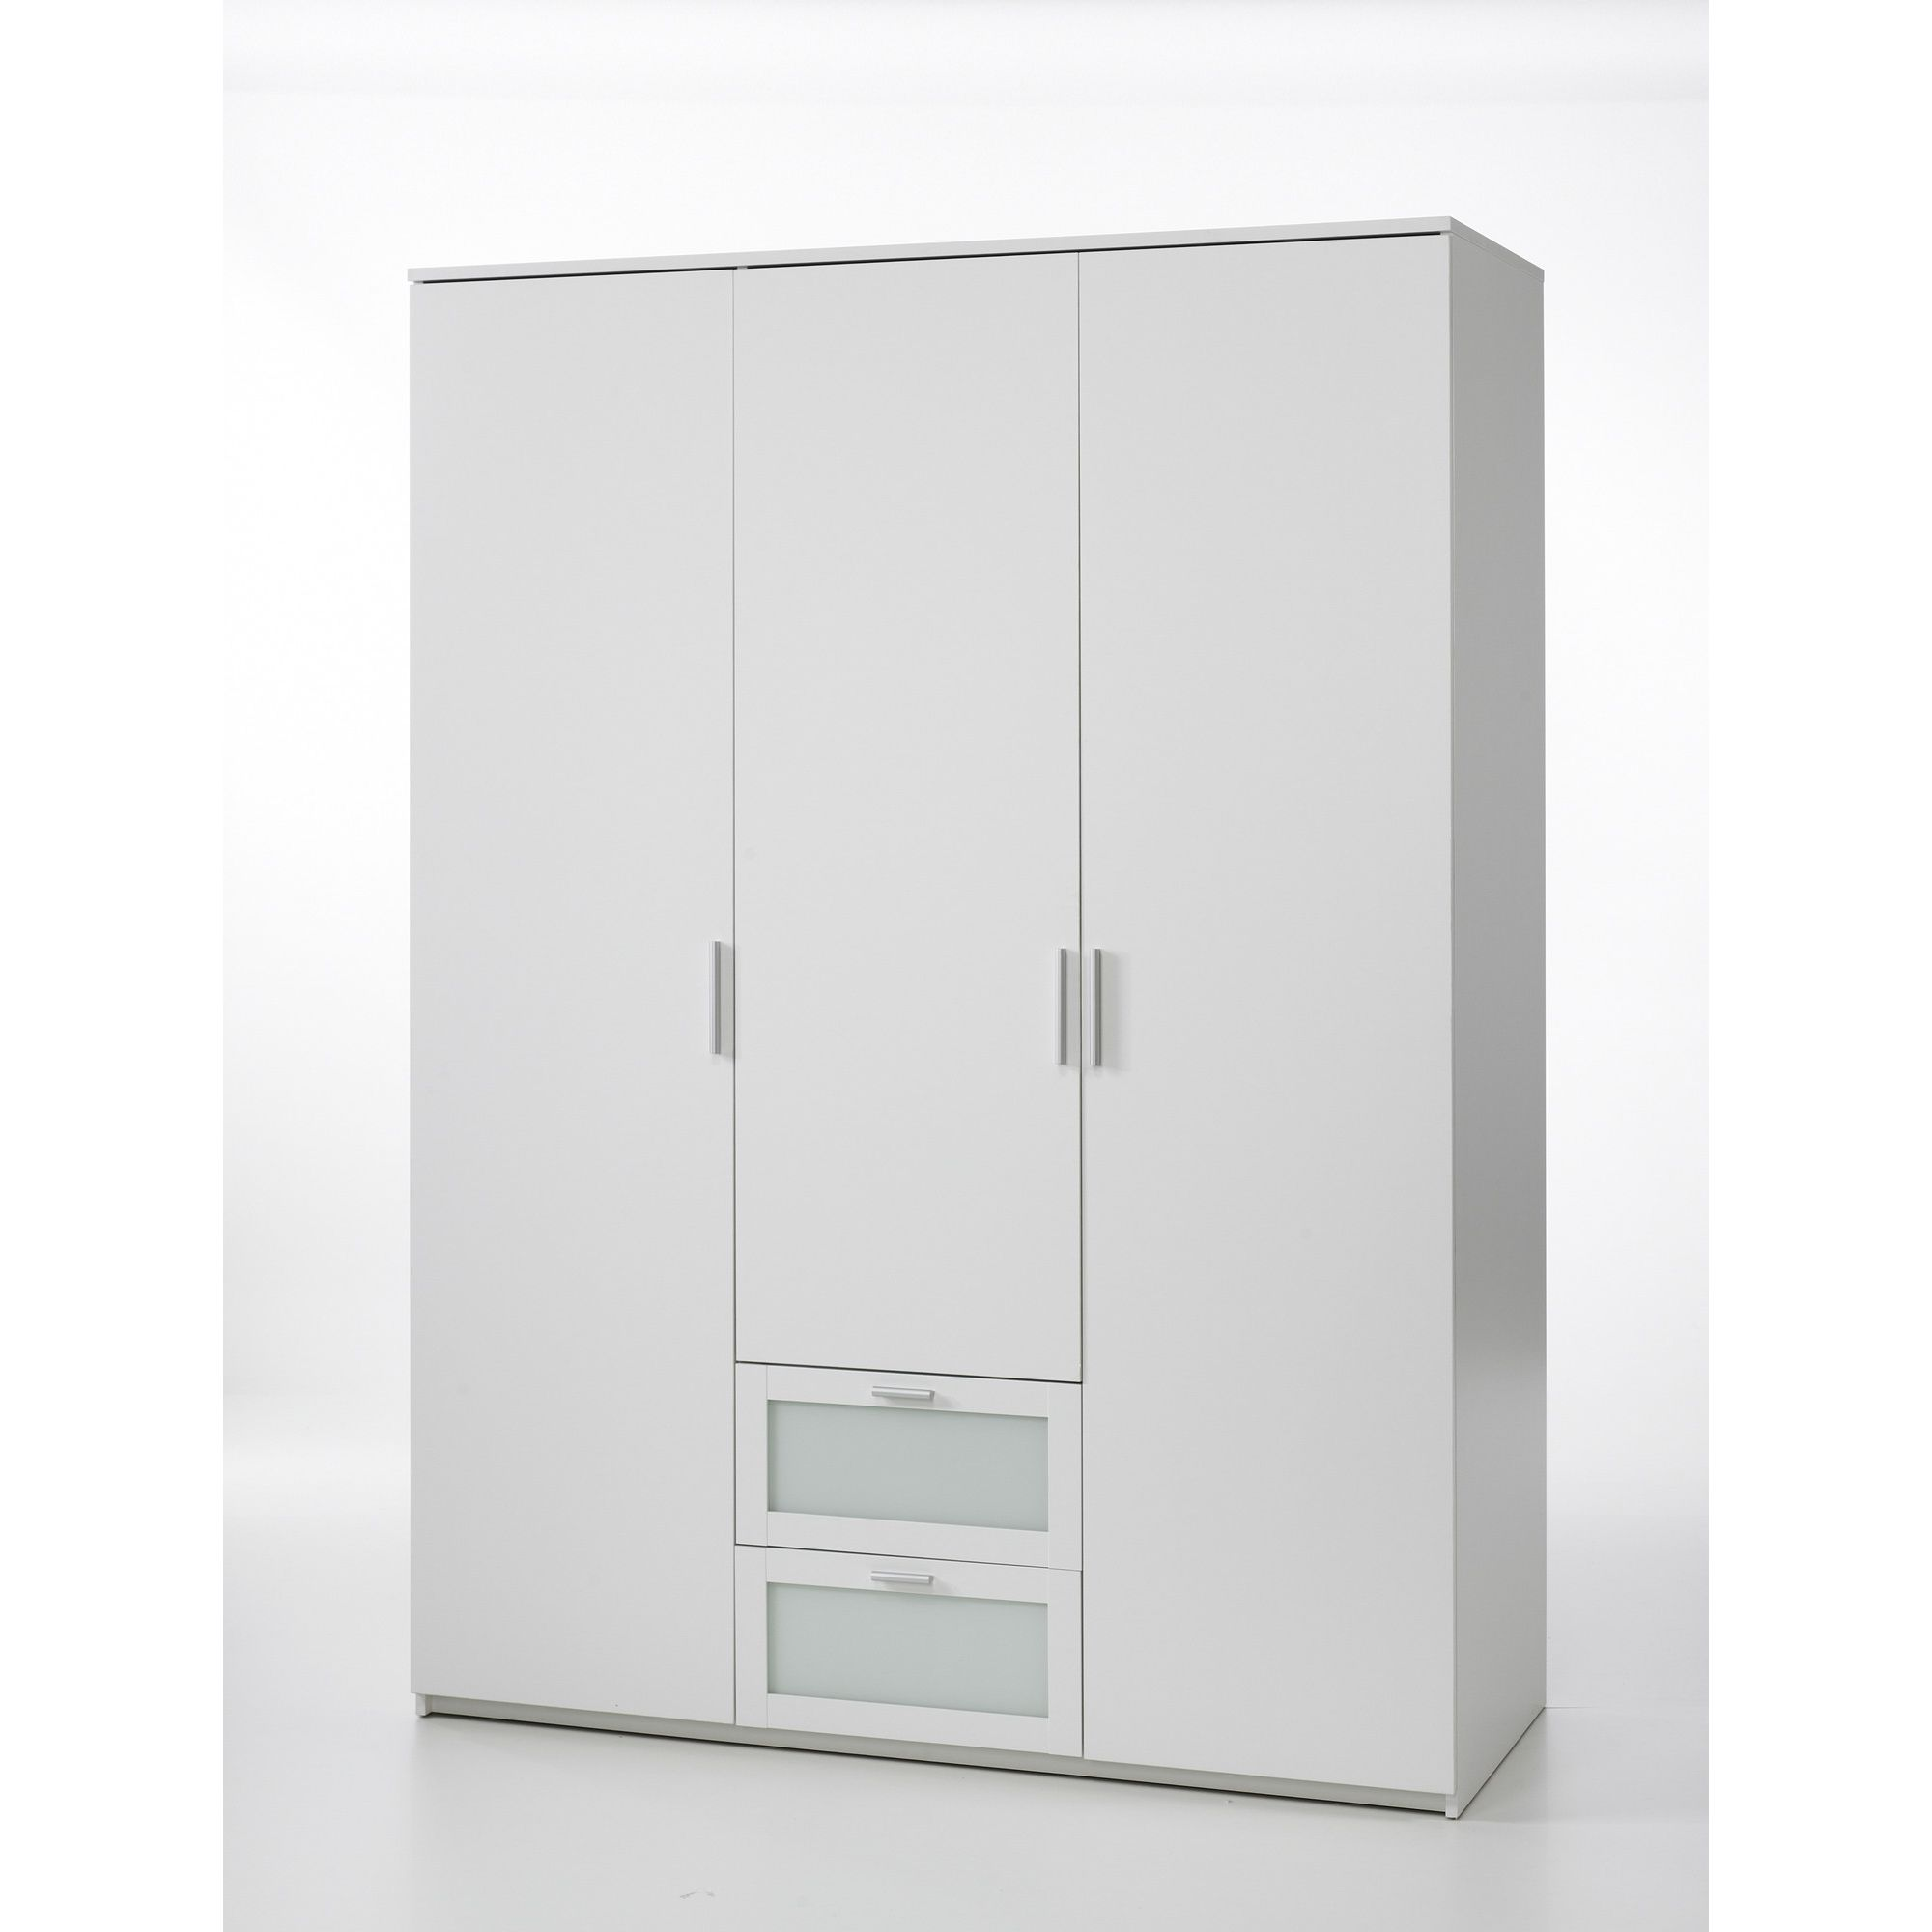 Tvilum New York Three Door Wardrobe in White at Tesco Direct